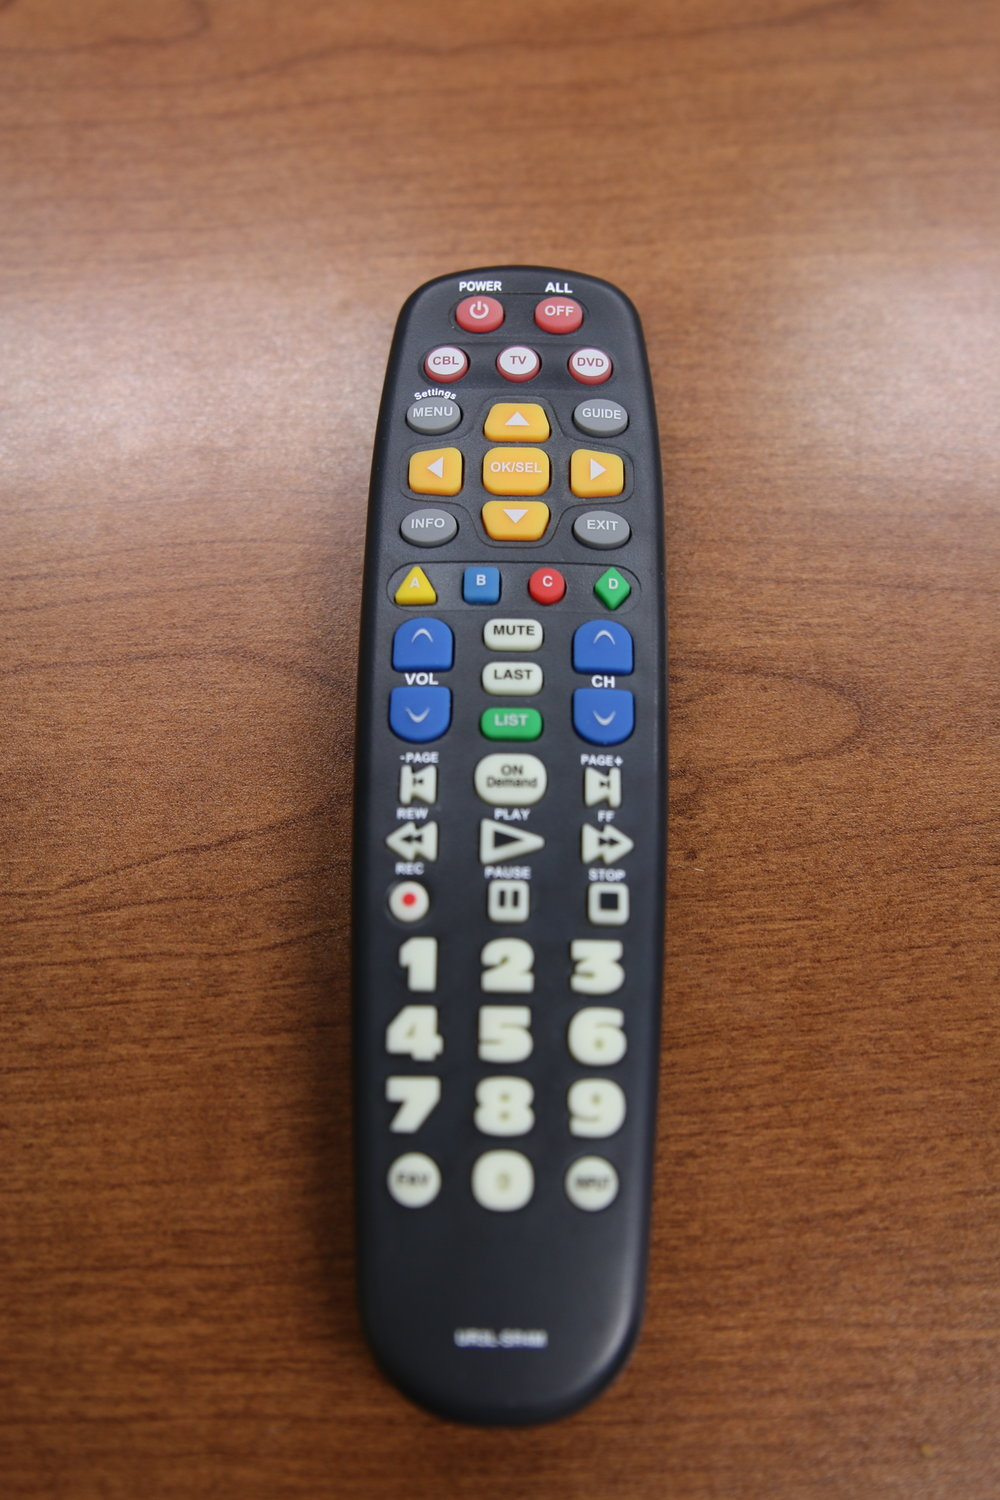 Digital TV DVR Remote